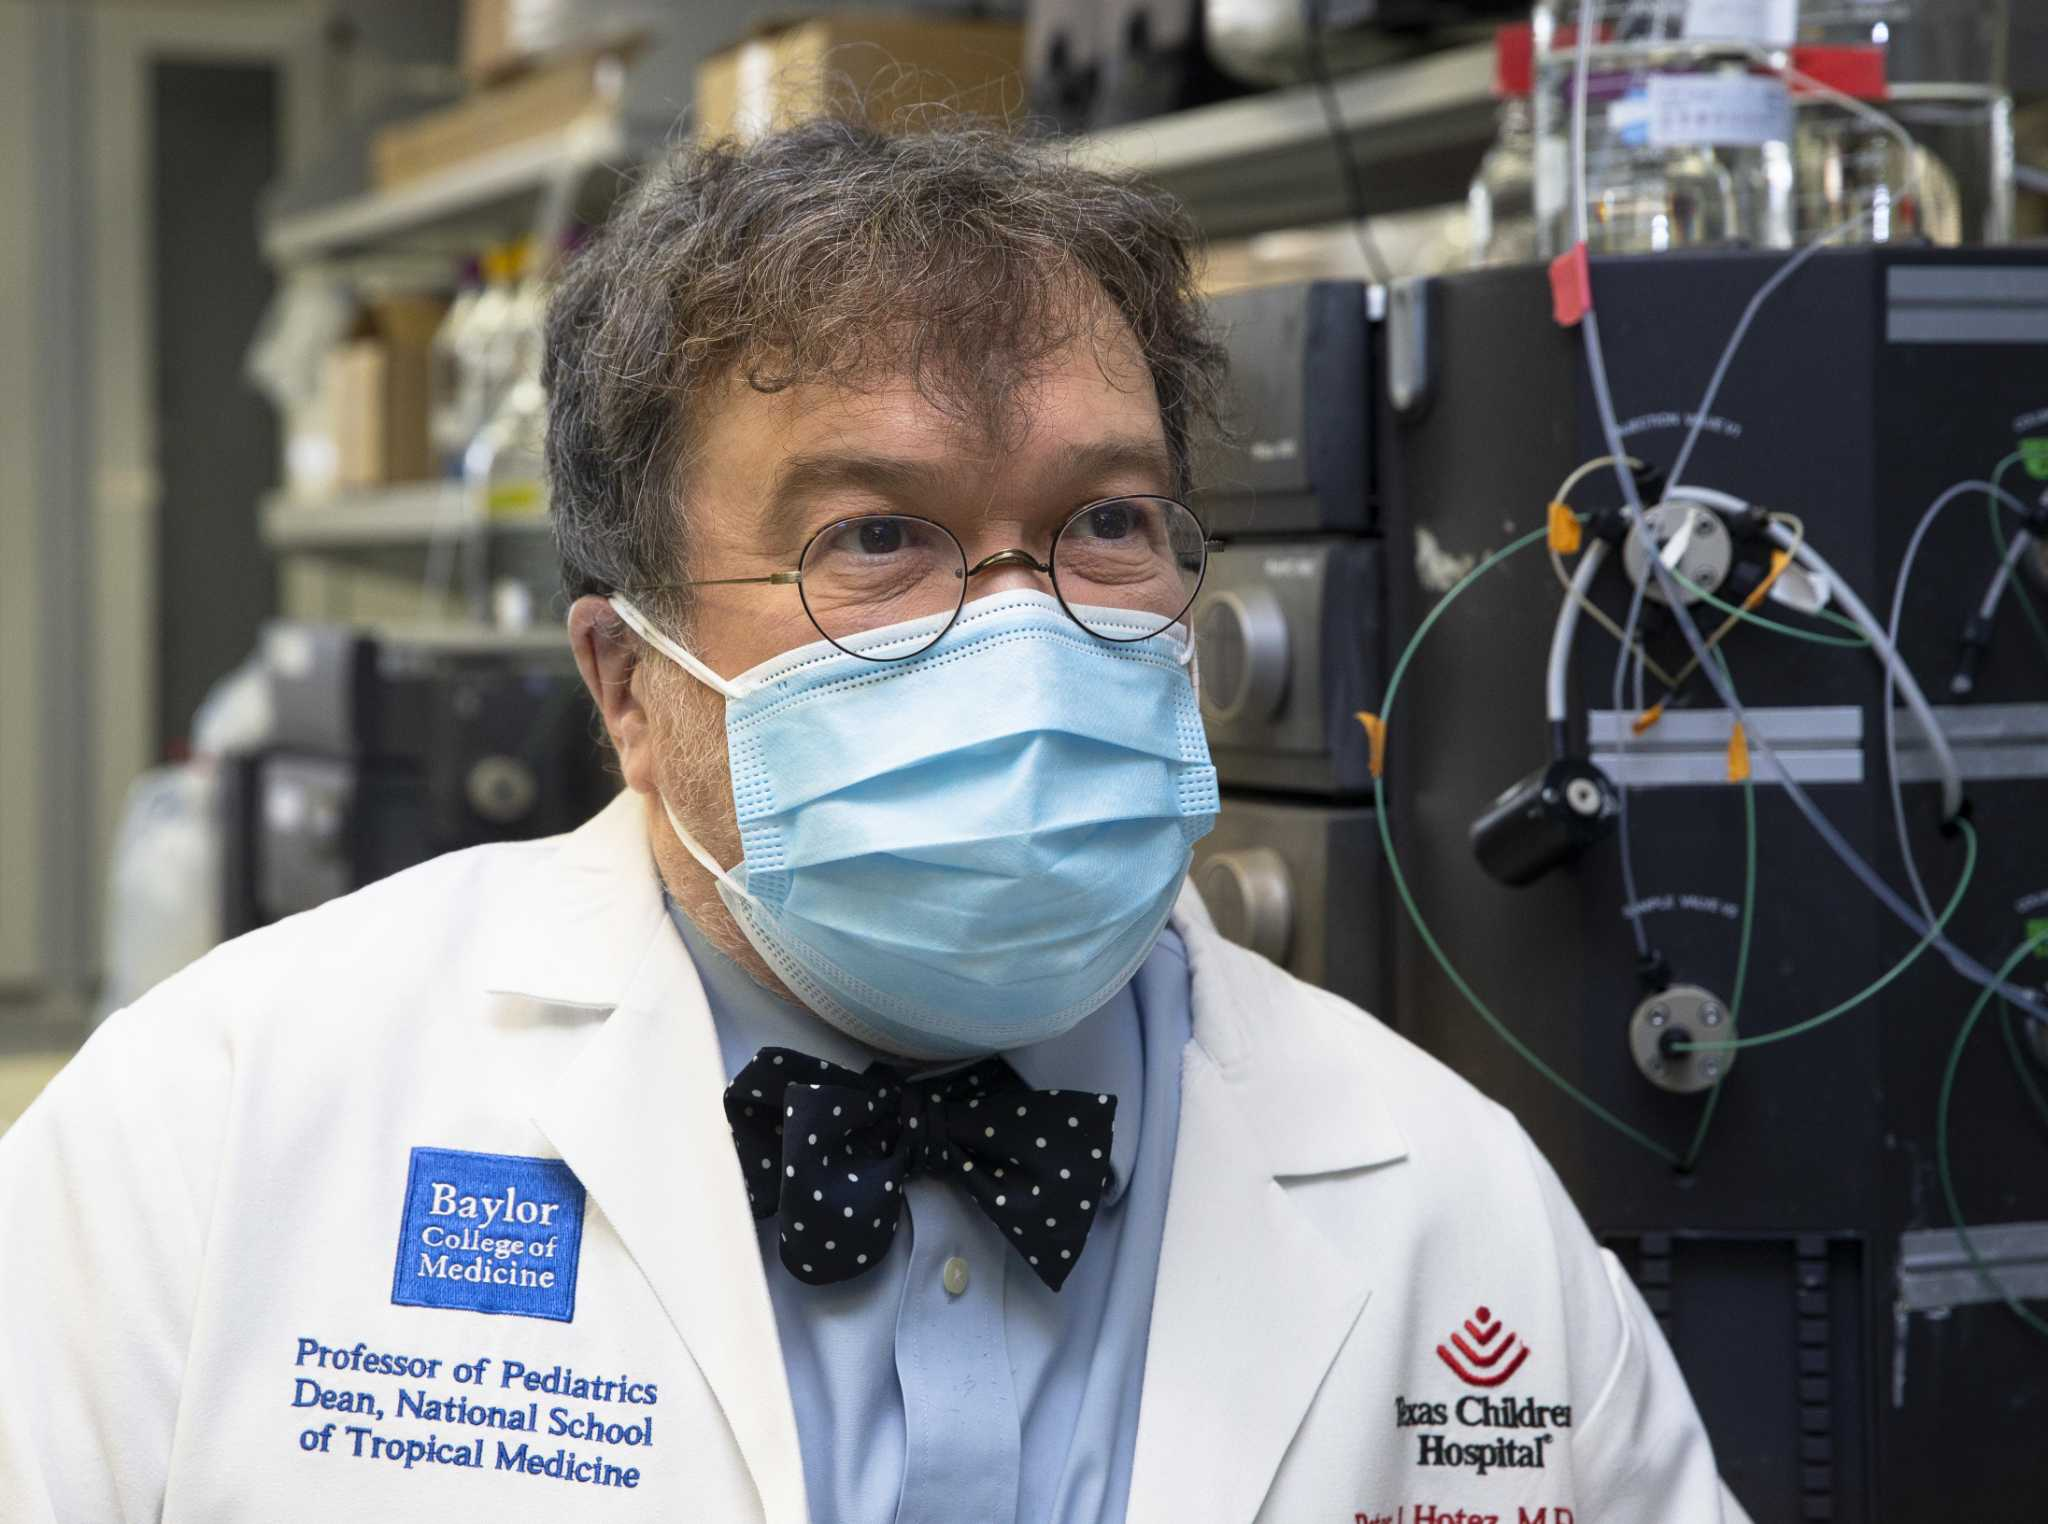 Coronavirus expert Peter Hotez: Prepare for a 'scary and difficult' winter in Houston - Houston Chronicle